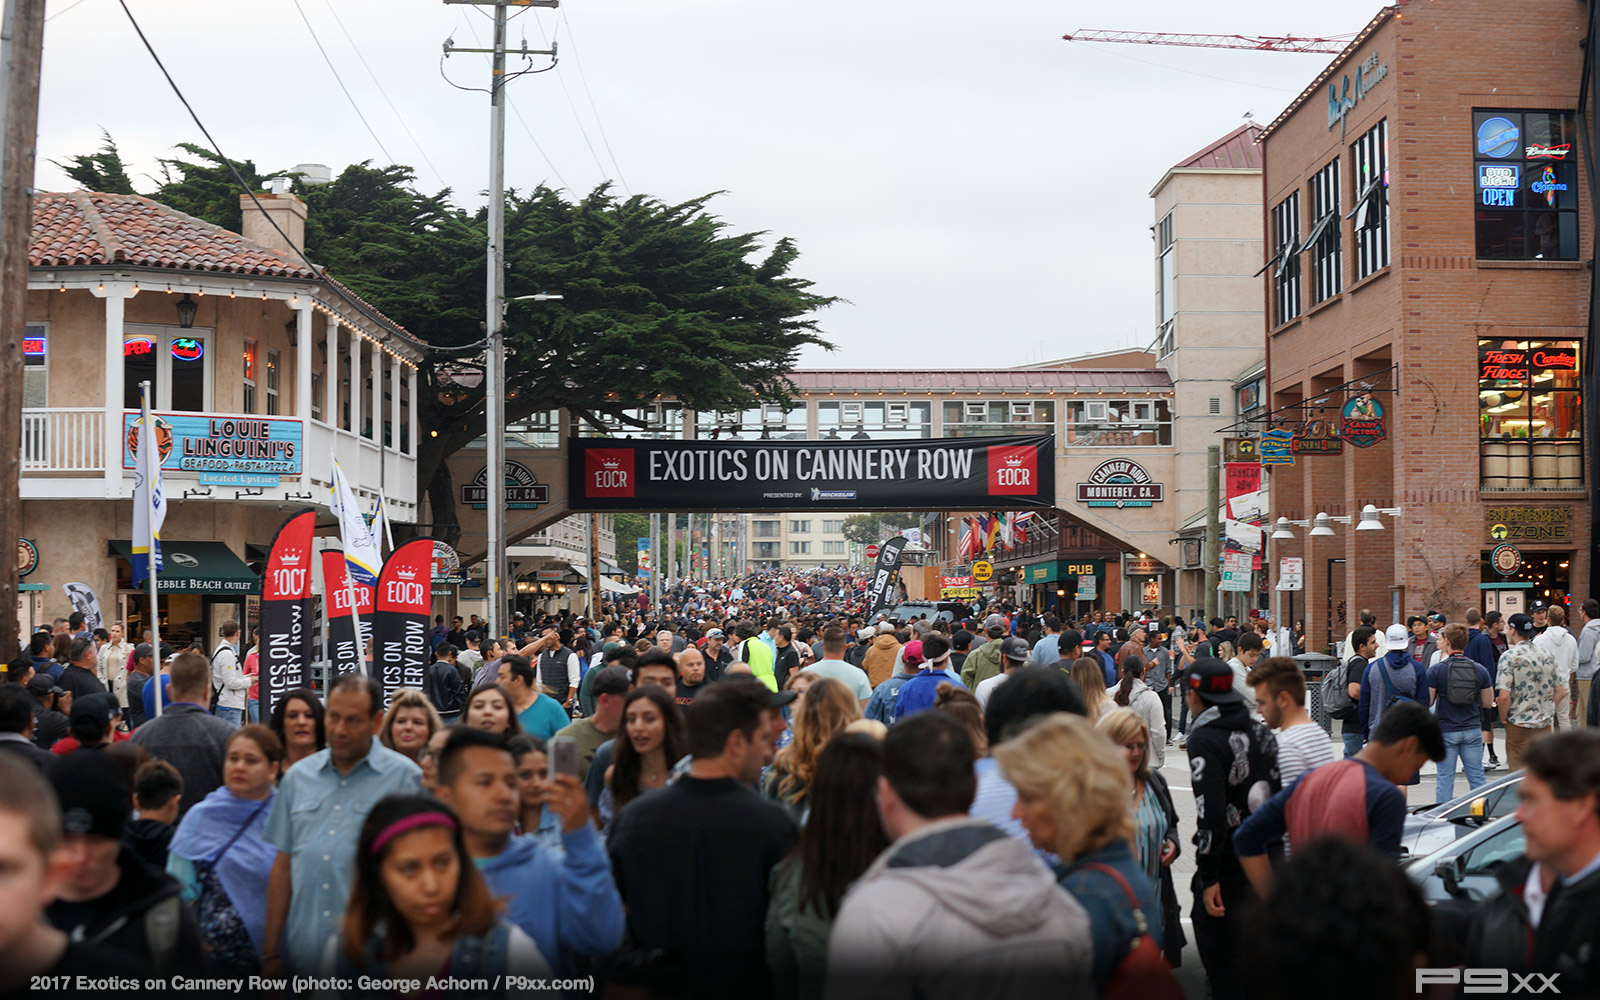 2017 Exotics on Cannery Row